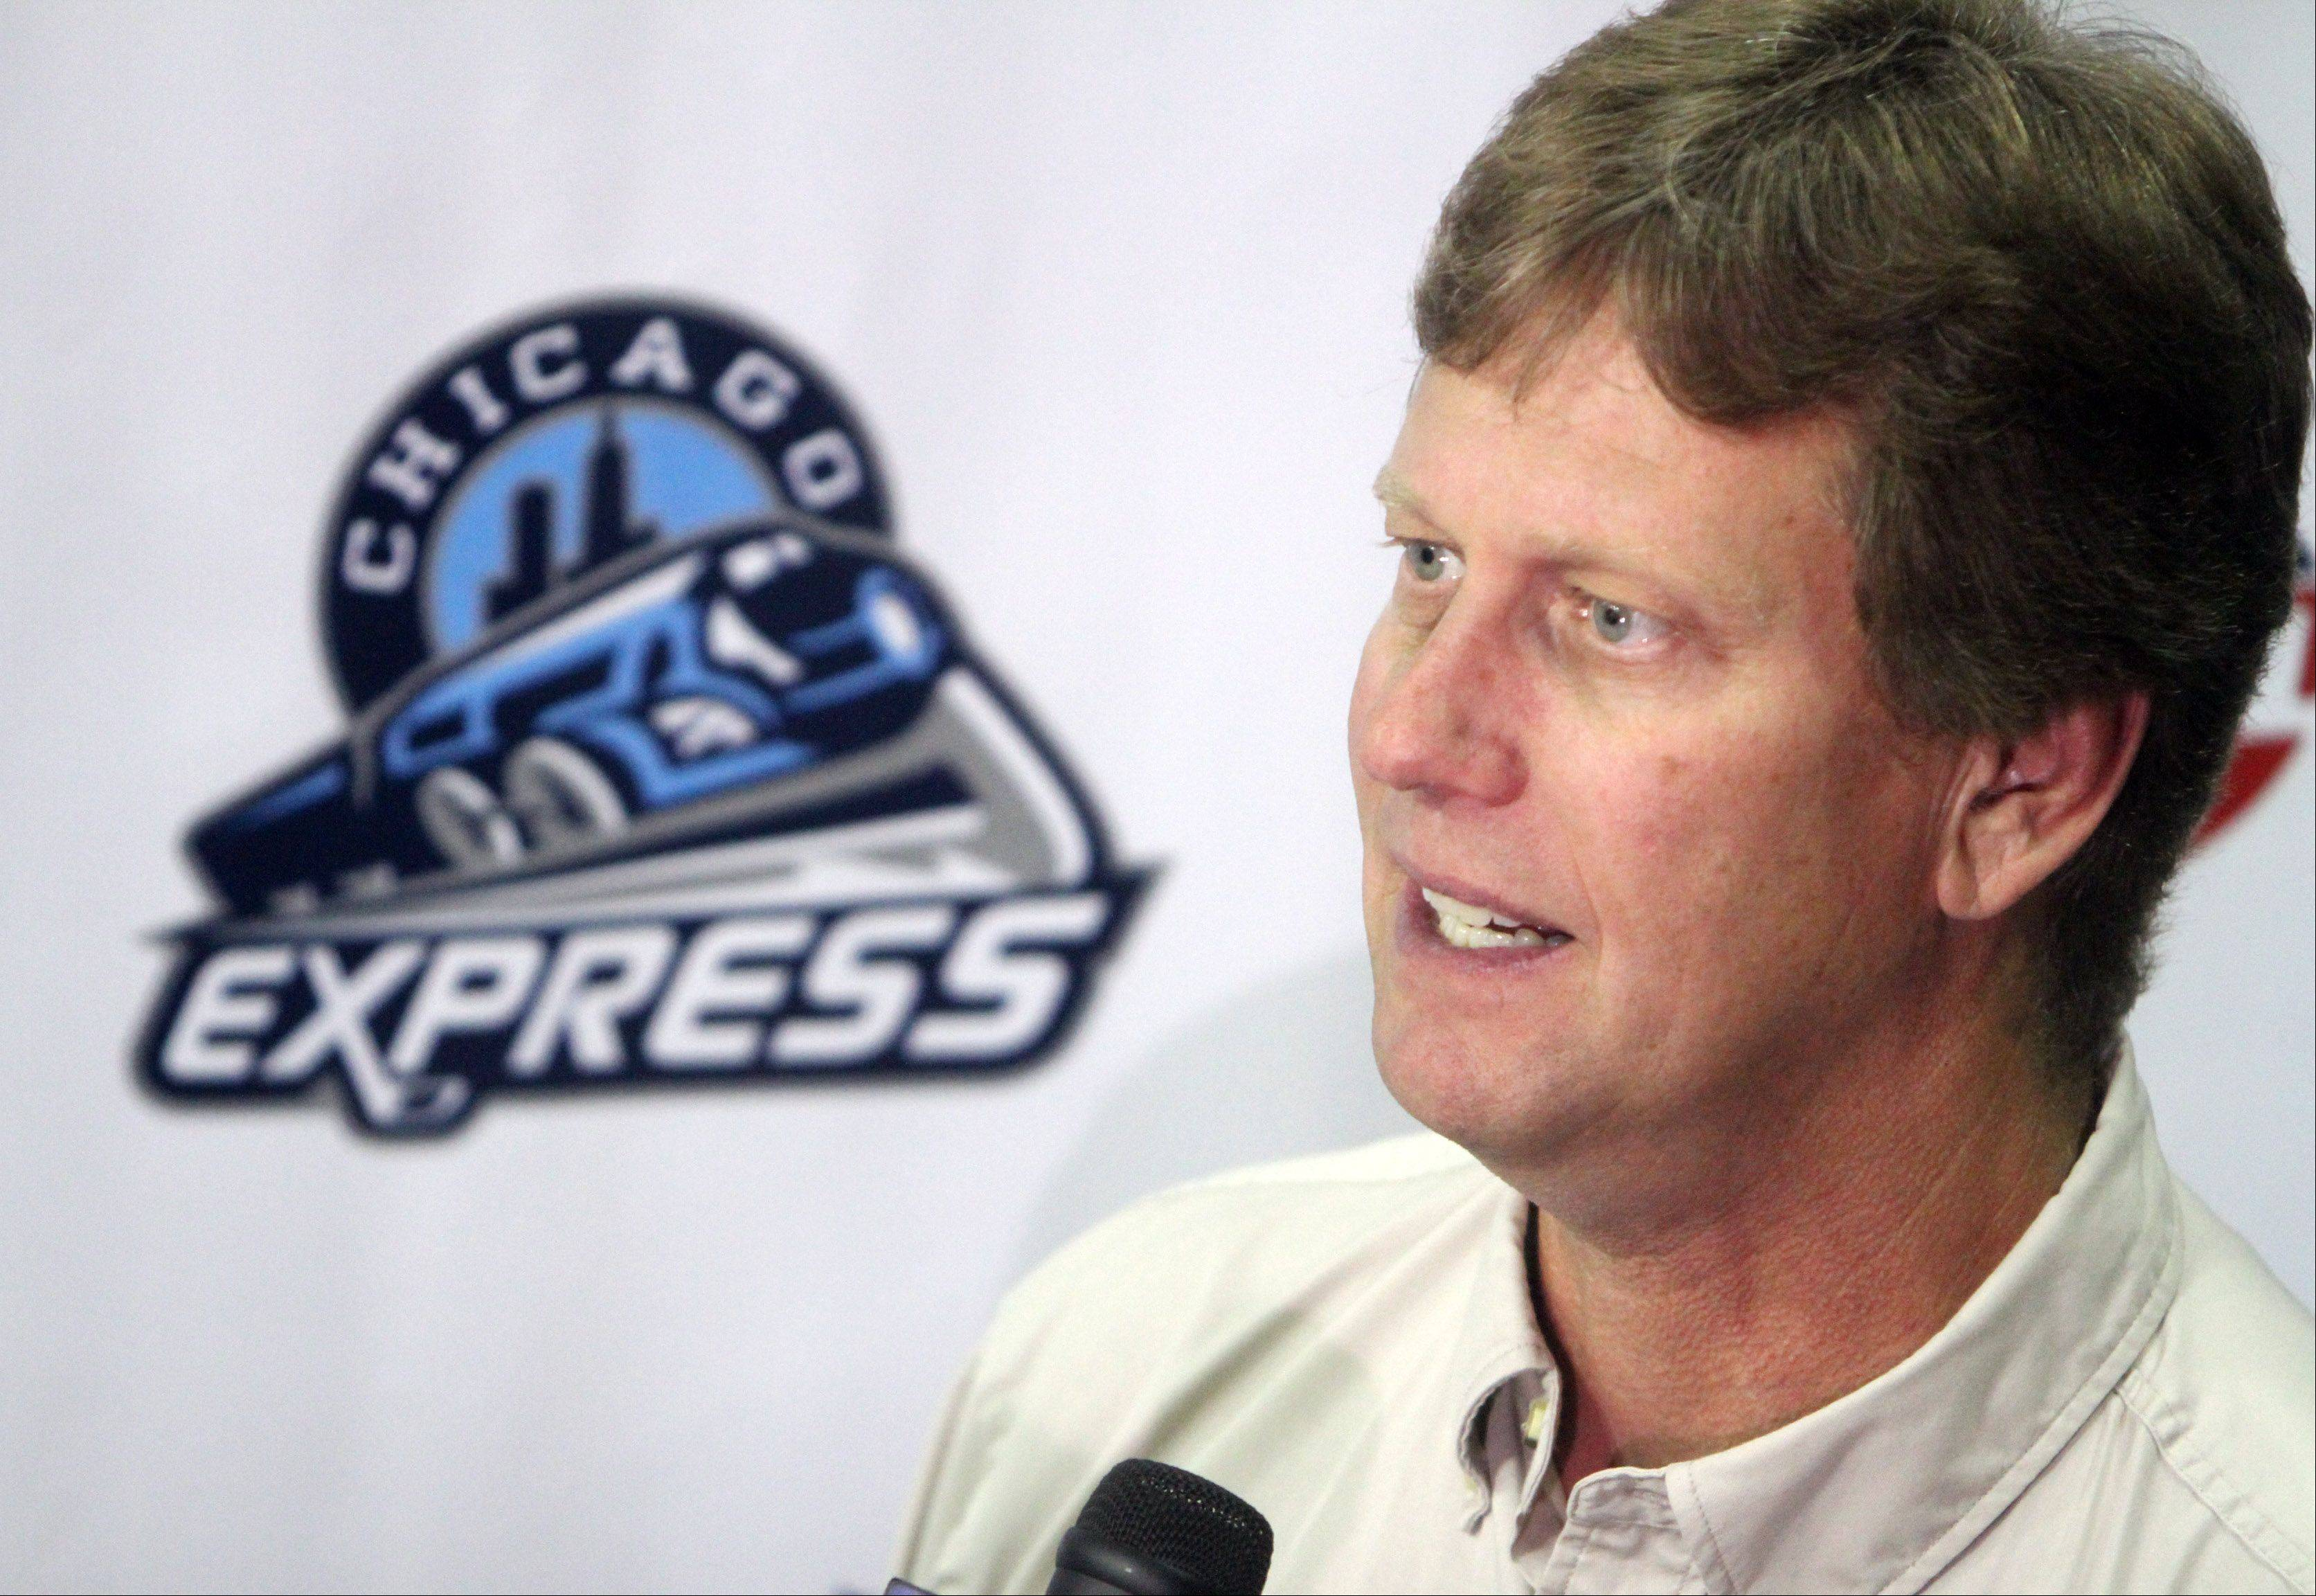 Chicago Express folds after 1 season at Sears Centre